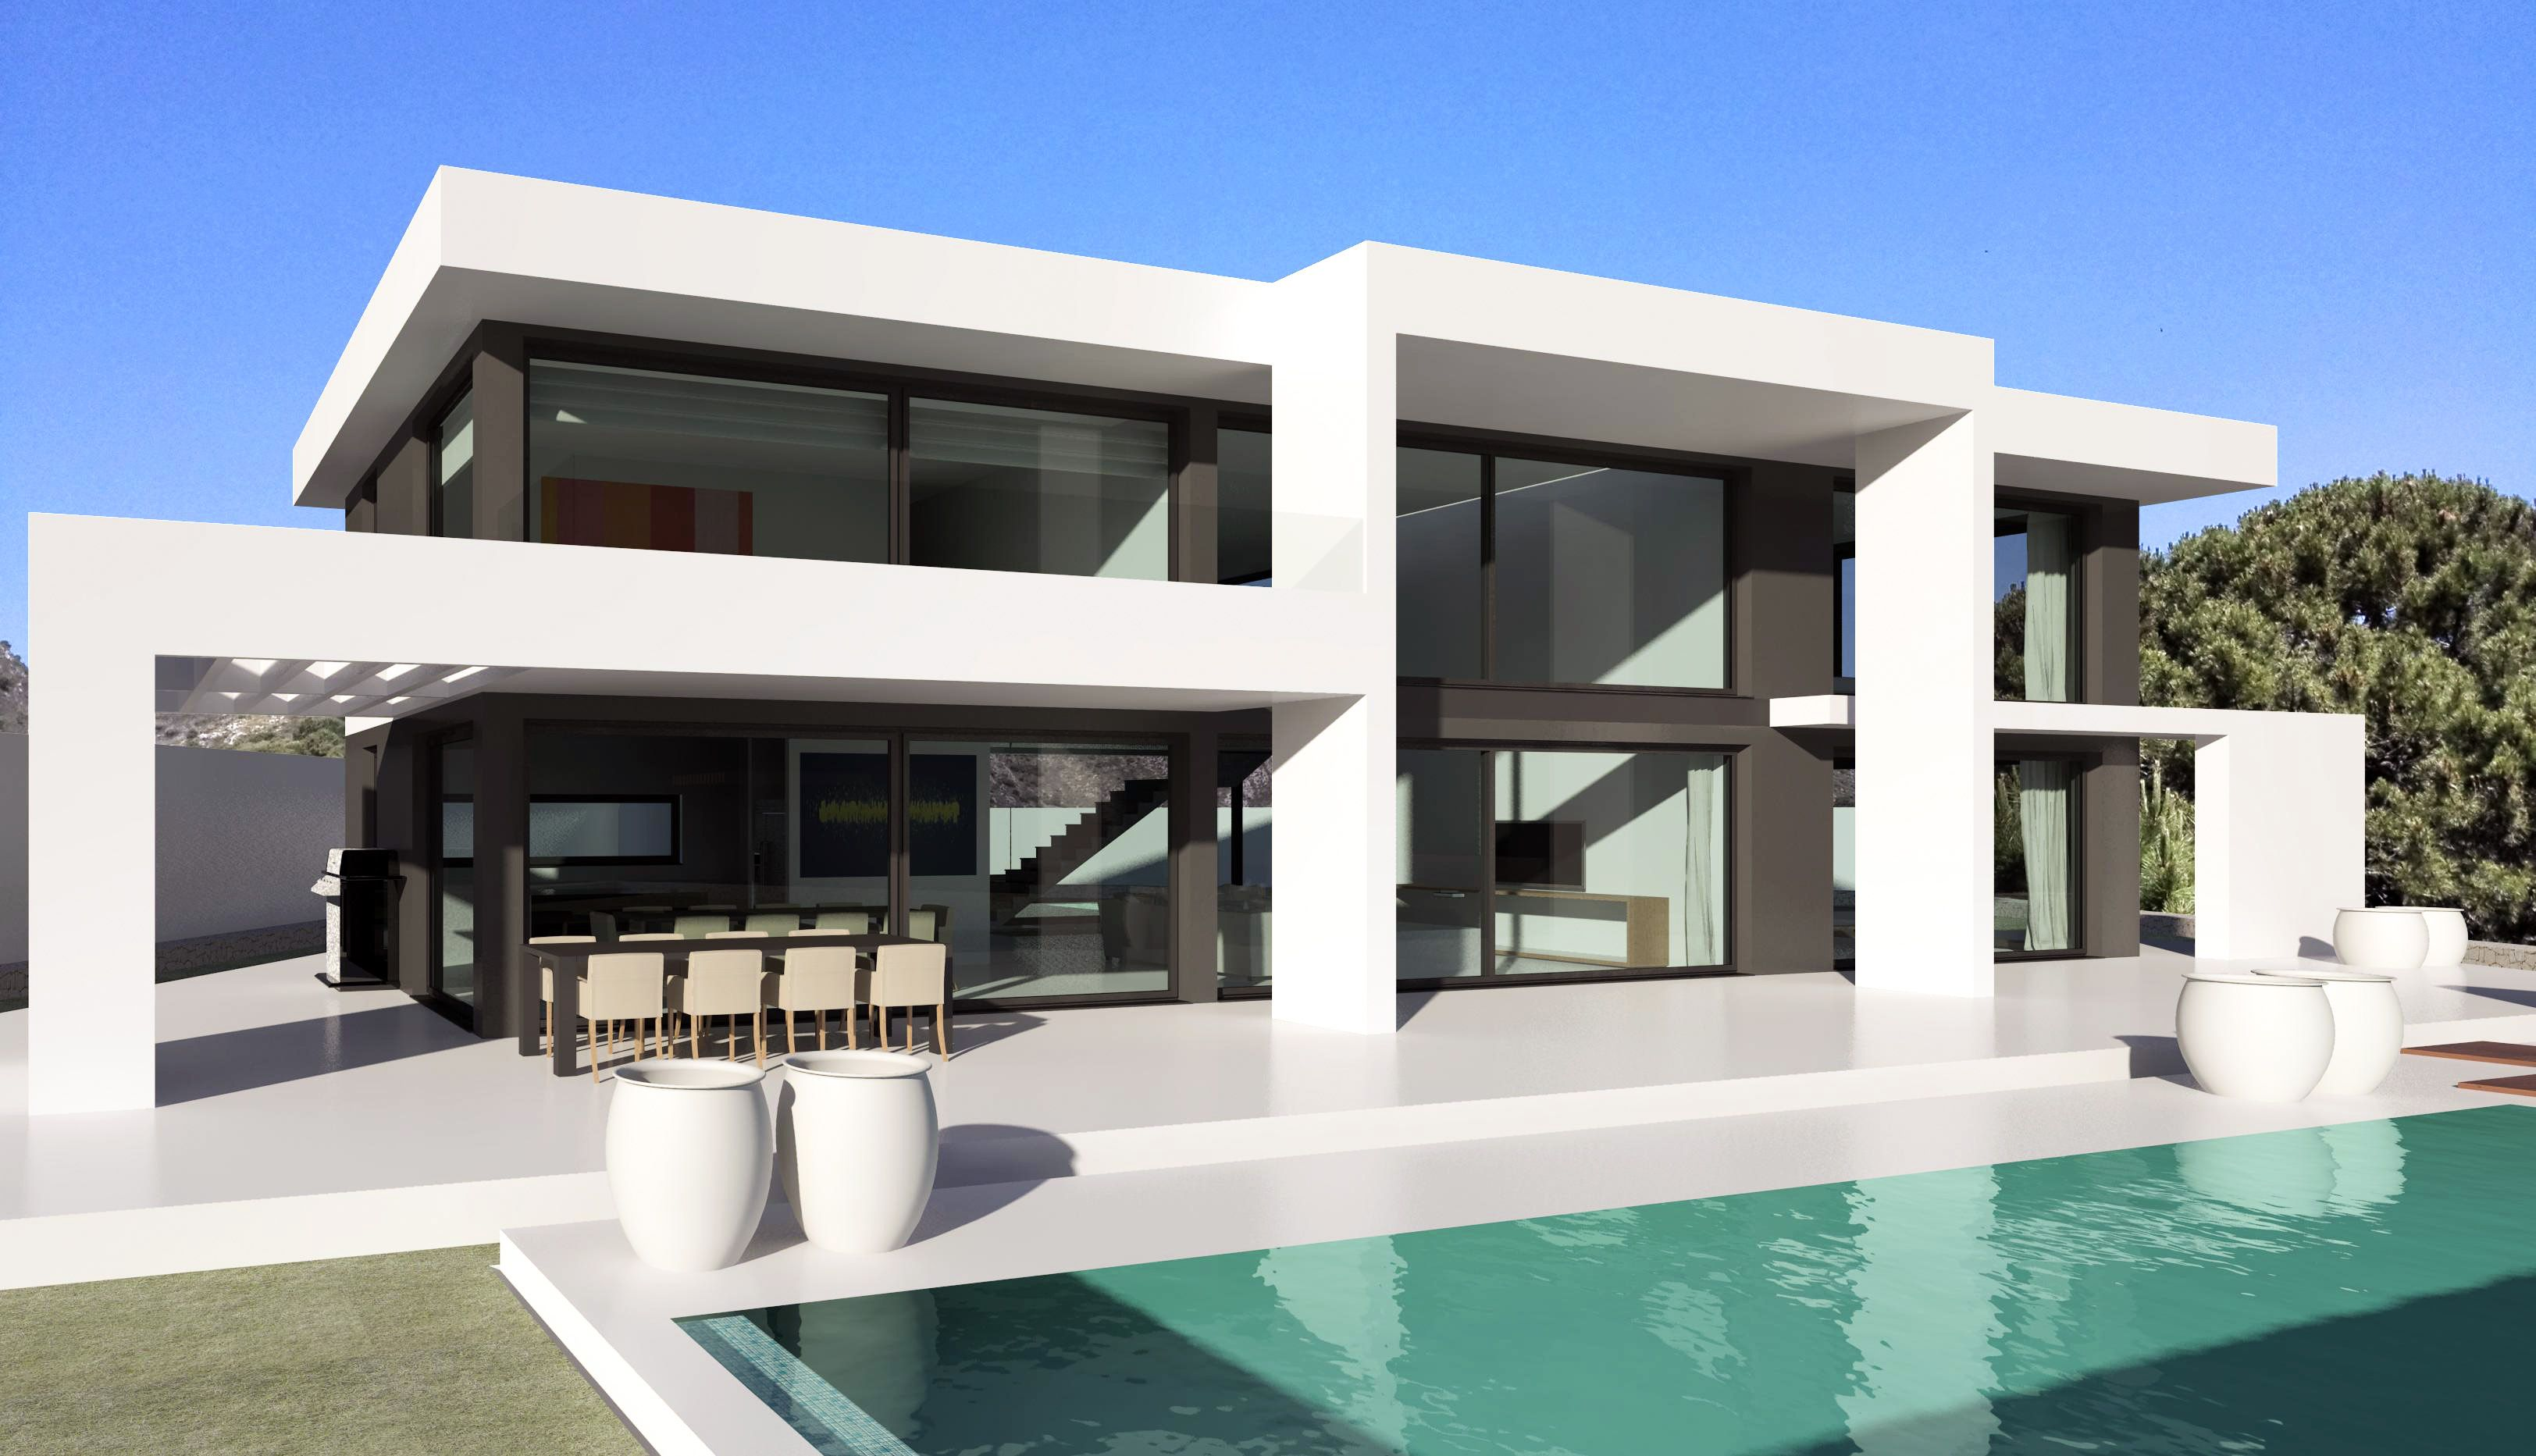 Modern turnkey villas in spain france portugal turnkey villas pinterest france Modern villa architecture design